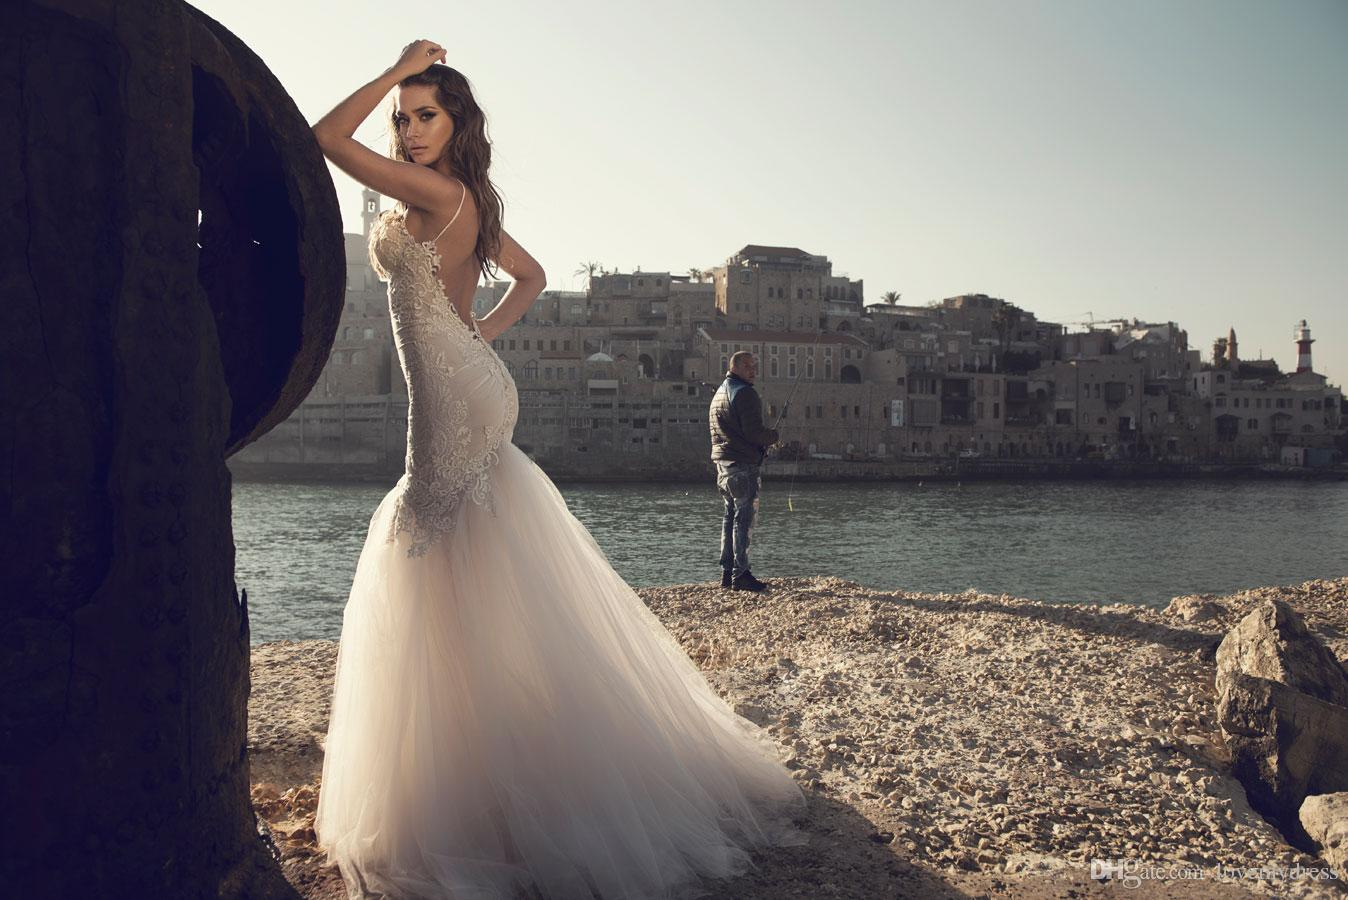 Mermaid Wedding Dress Tulle Gown Backless Sexy Sleeveless Spaghettis Applique Elegant Floor Length Custom Made Bridal Gown Cheap Price